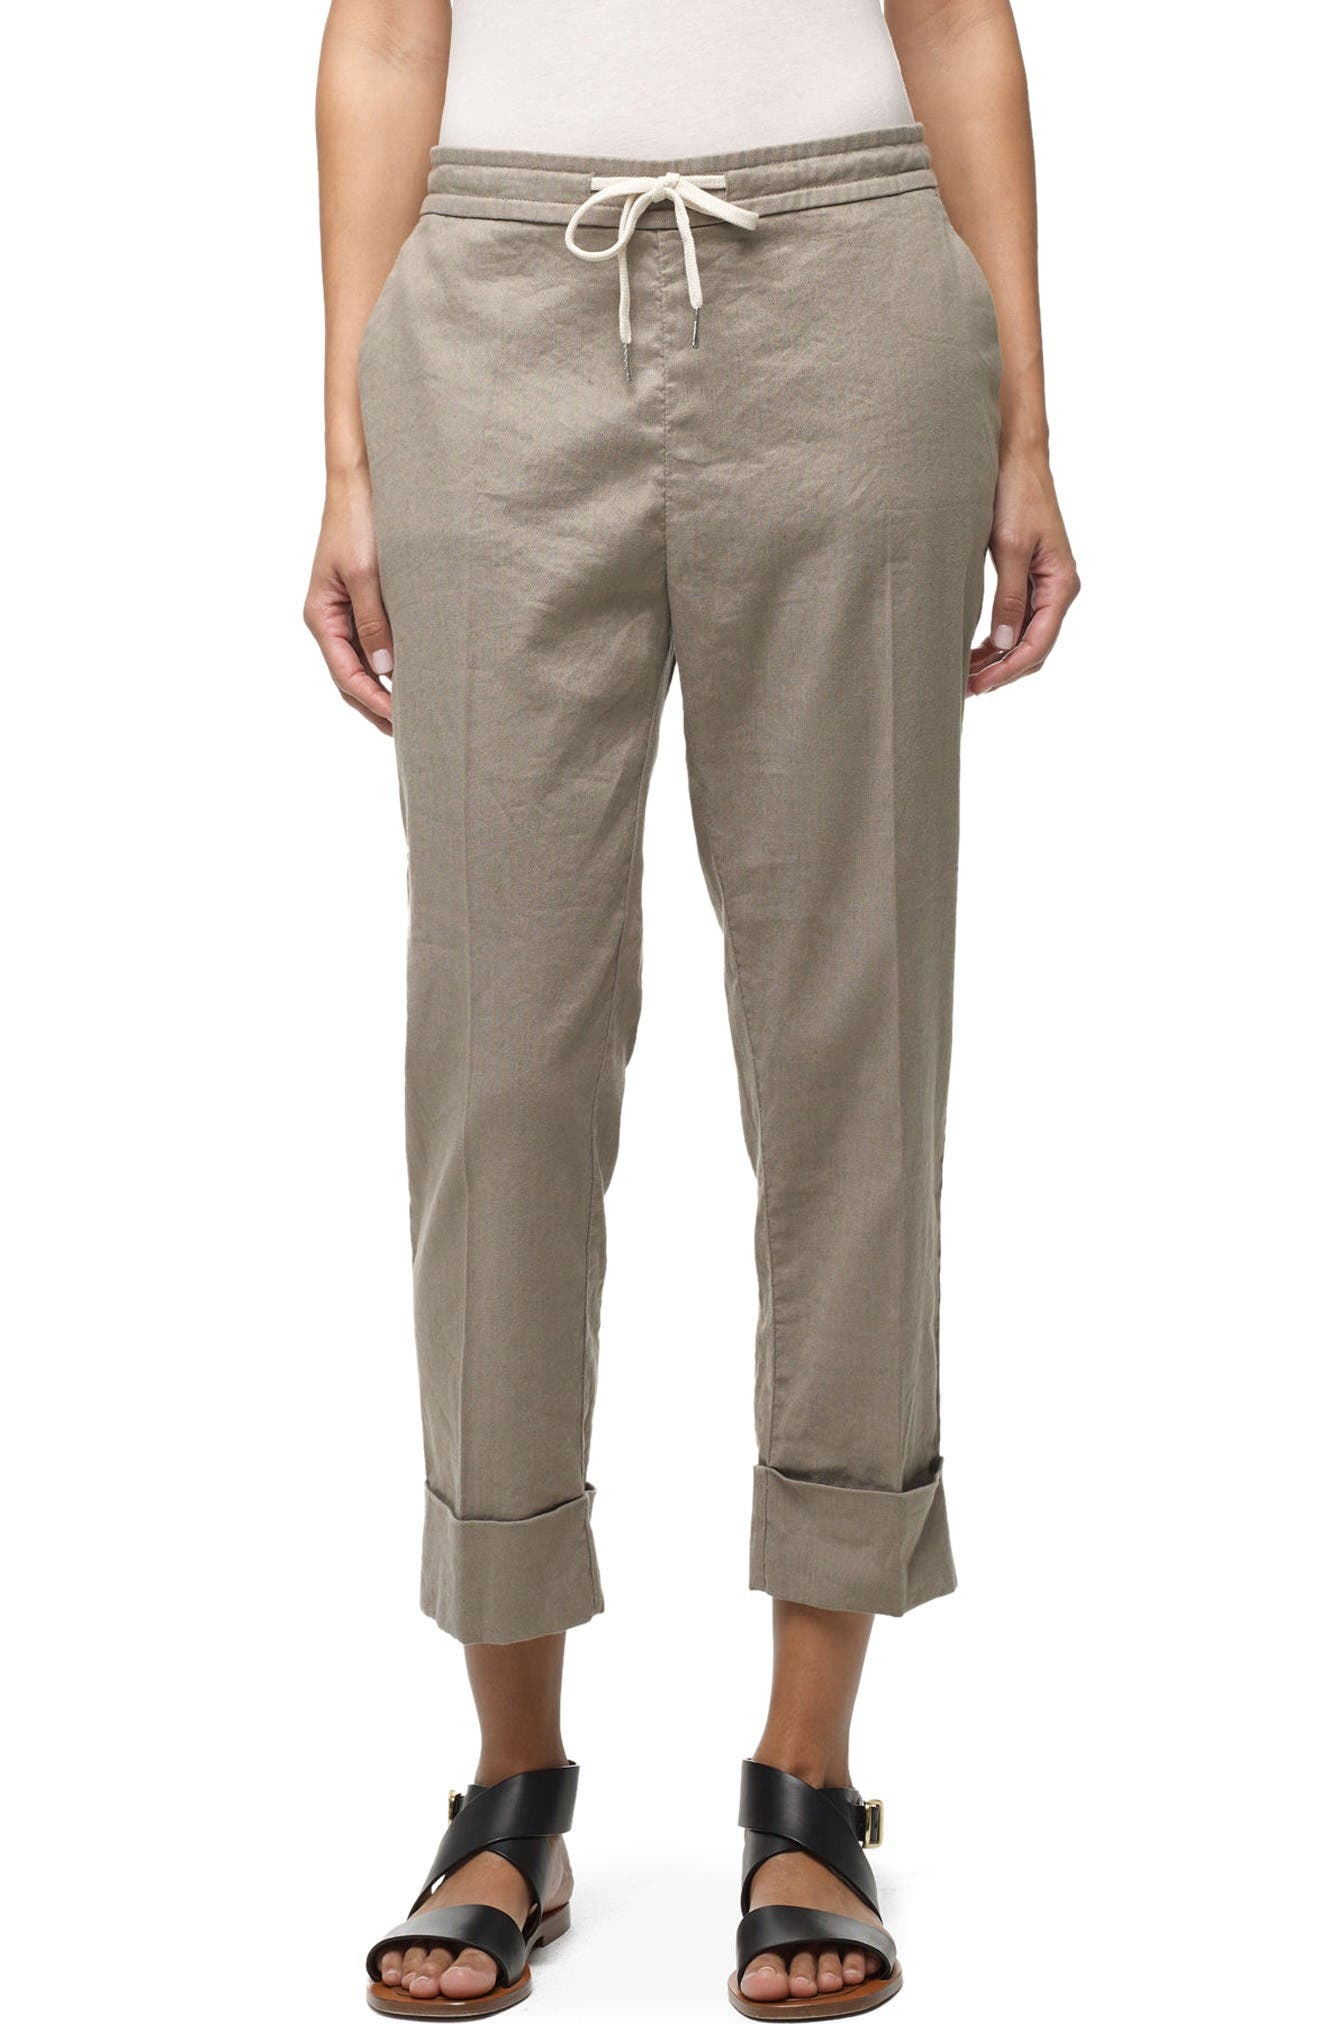 James Perse Cuffed Crop Pants